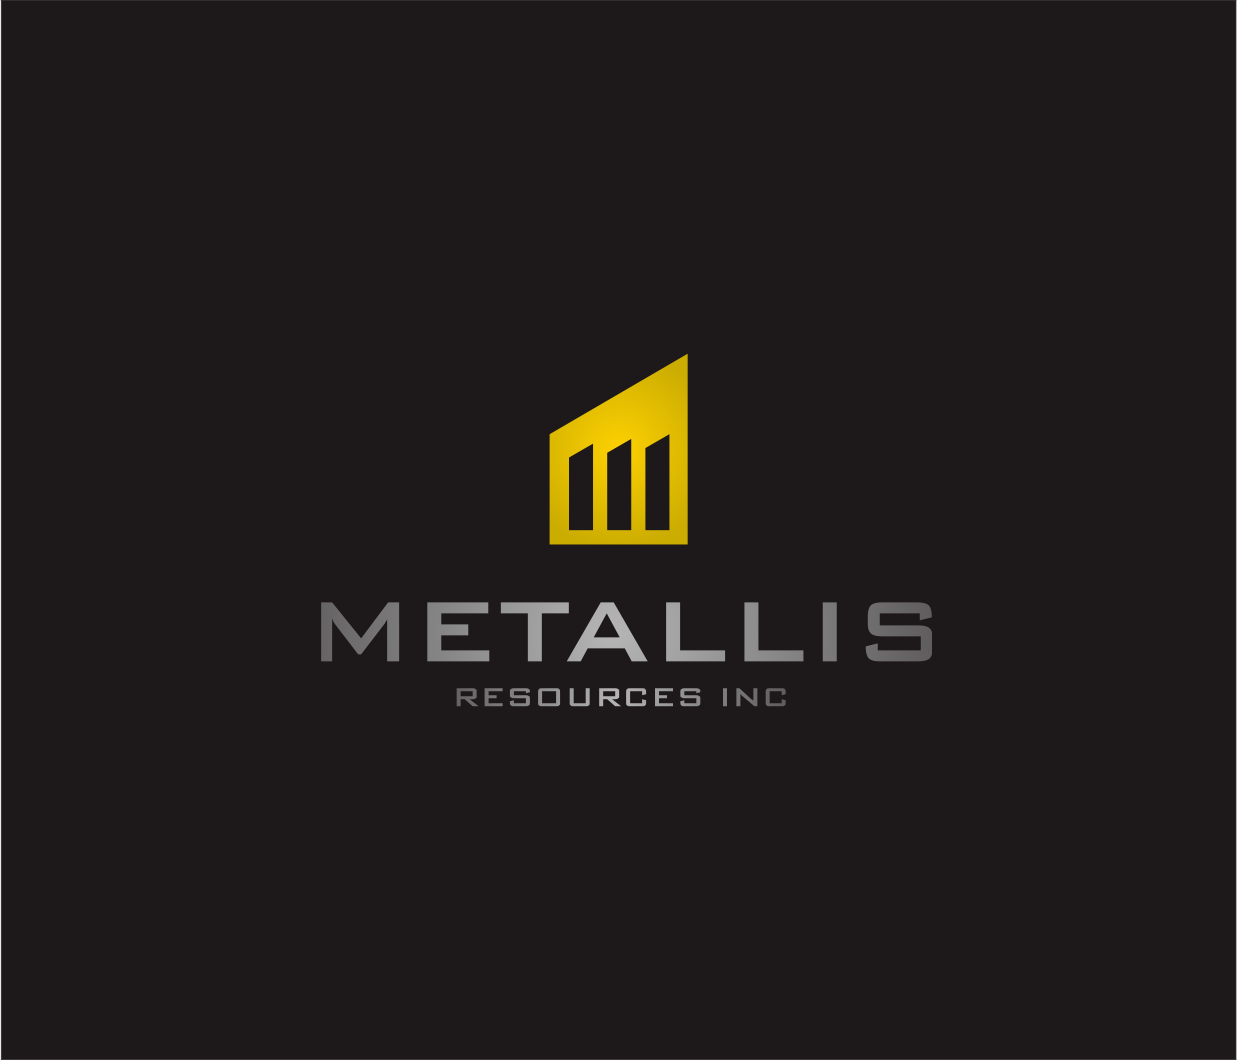 Logo Design by Armada Jamaluddin - Entry No. 146 in the Logo Design Contest Metallis Resources Inc Logo Design.